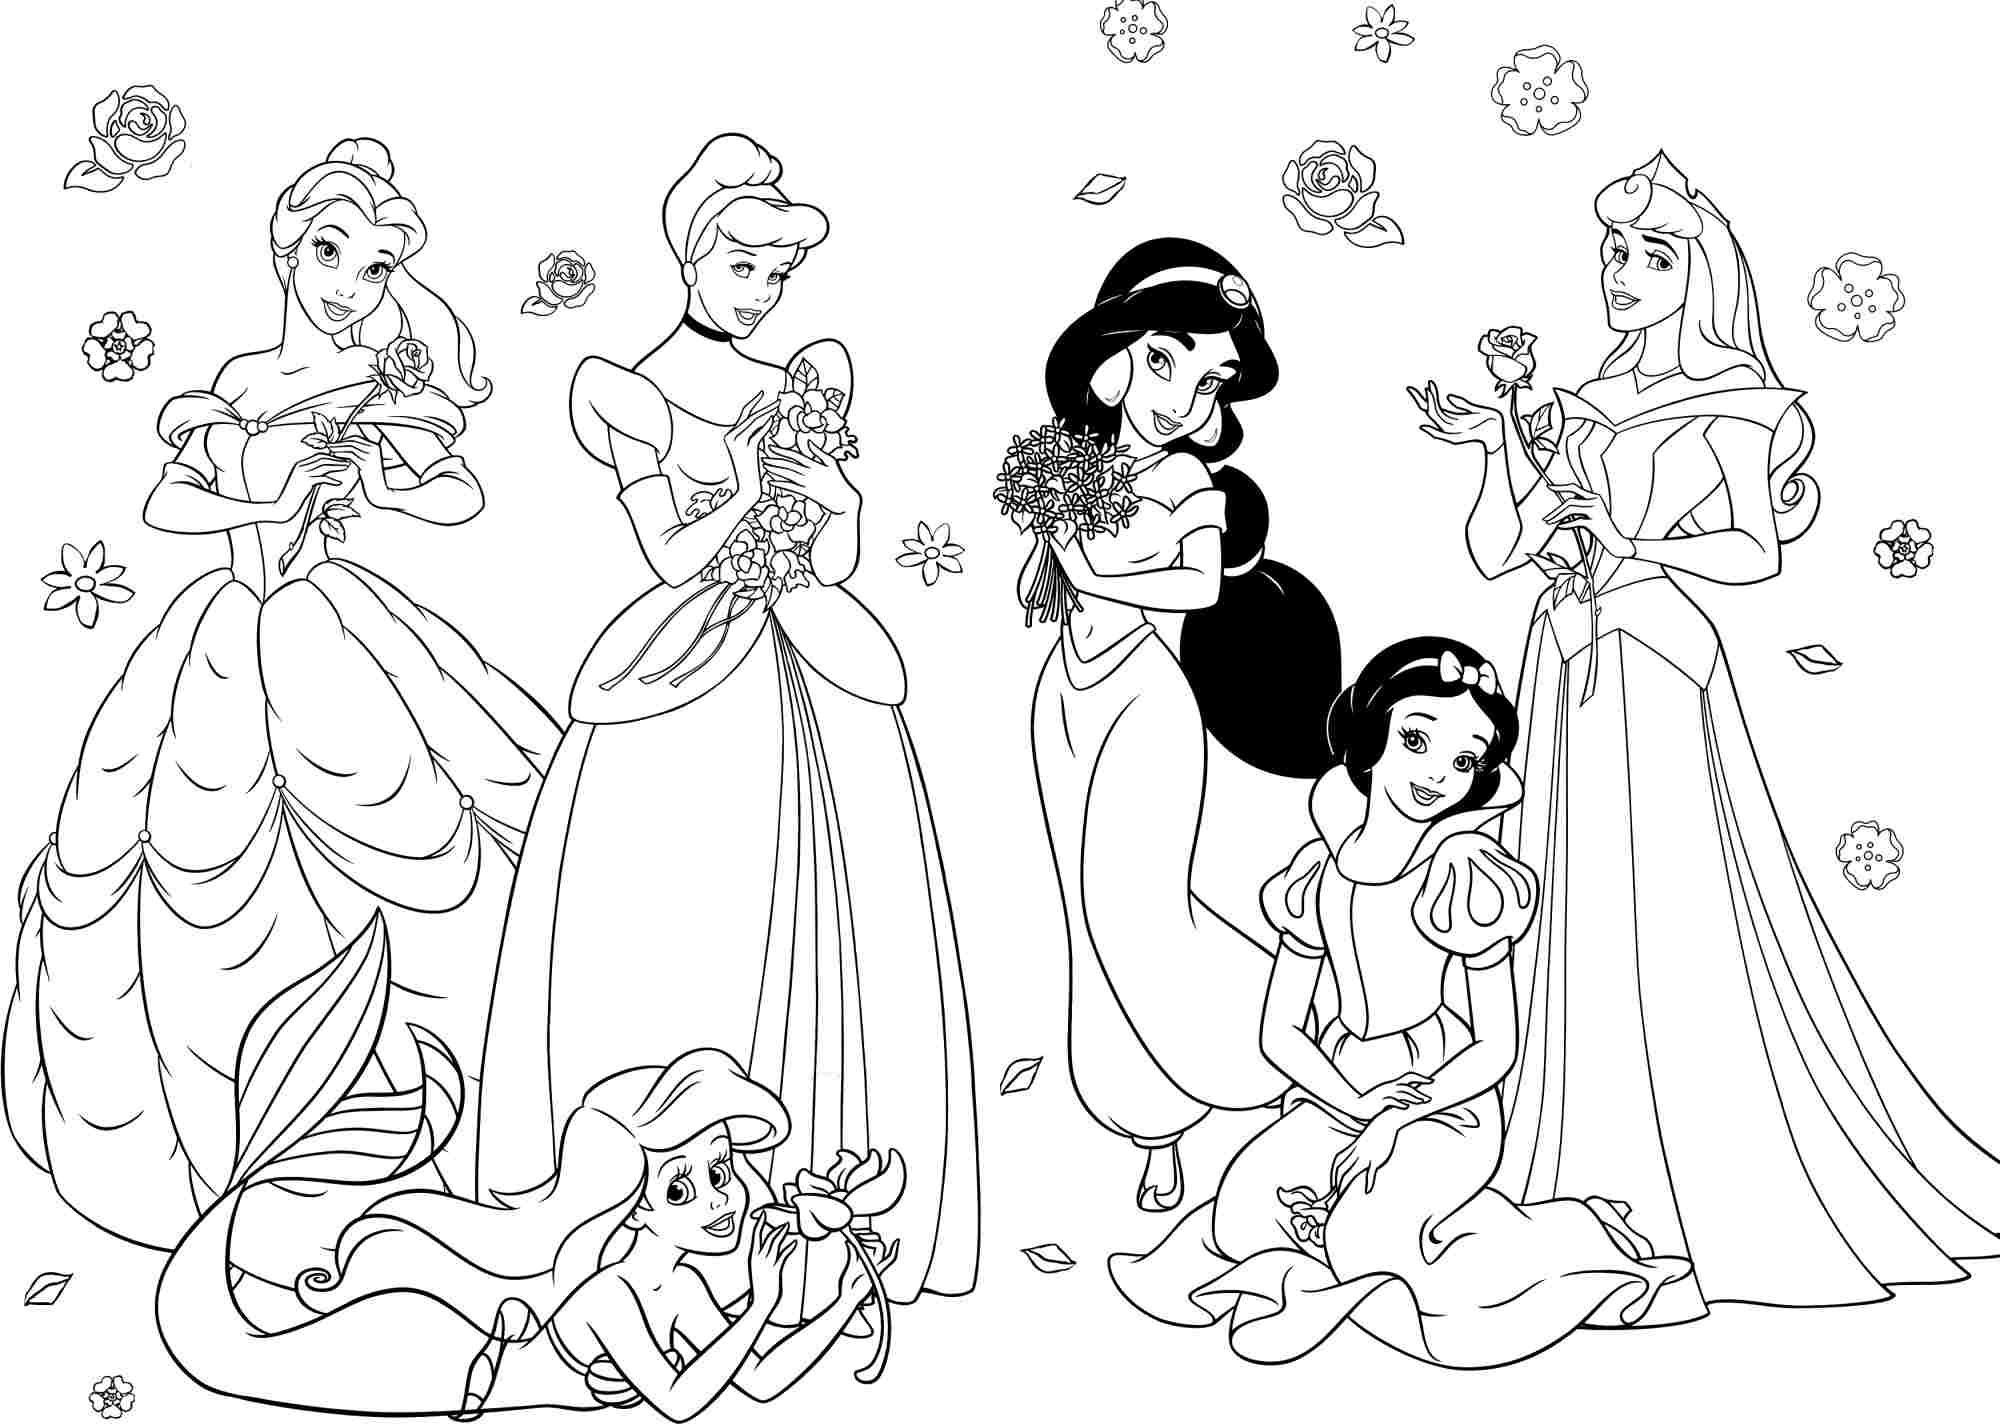 Disney Coloring Pages Princess Disney Coloring Pages Princess Disney Coloring S Disney Princess Coloring Pages Disney Princess Colors Princess Coloring Pages